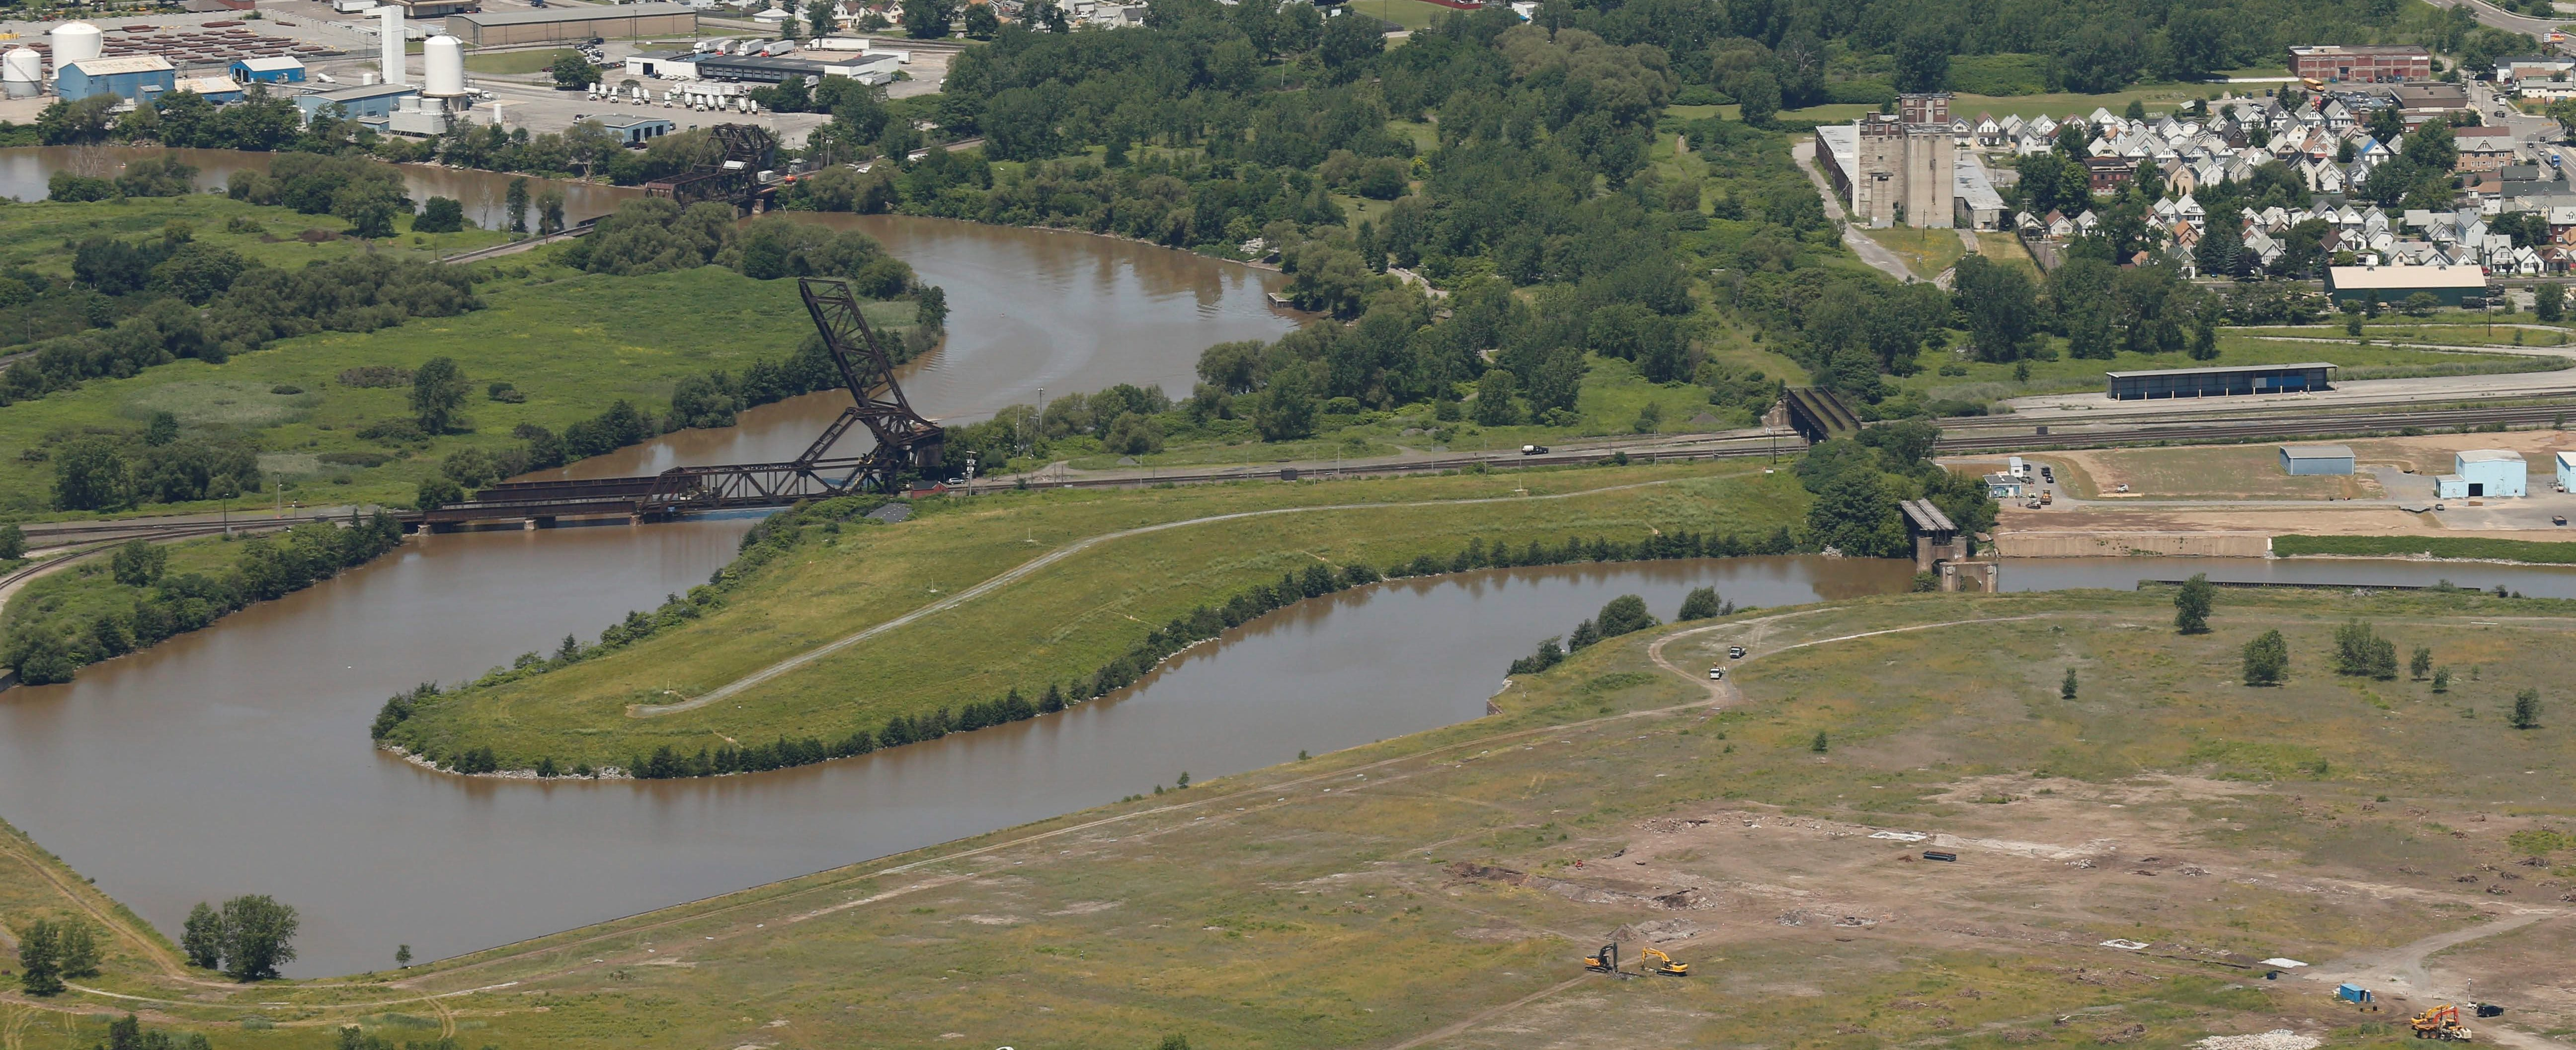 The Buffalo River, as seen from above. (Derek Gee/News file photo)